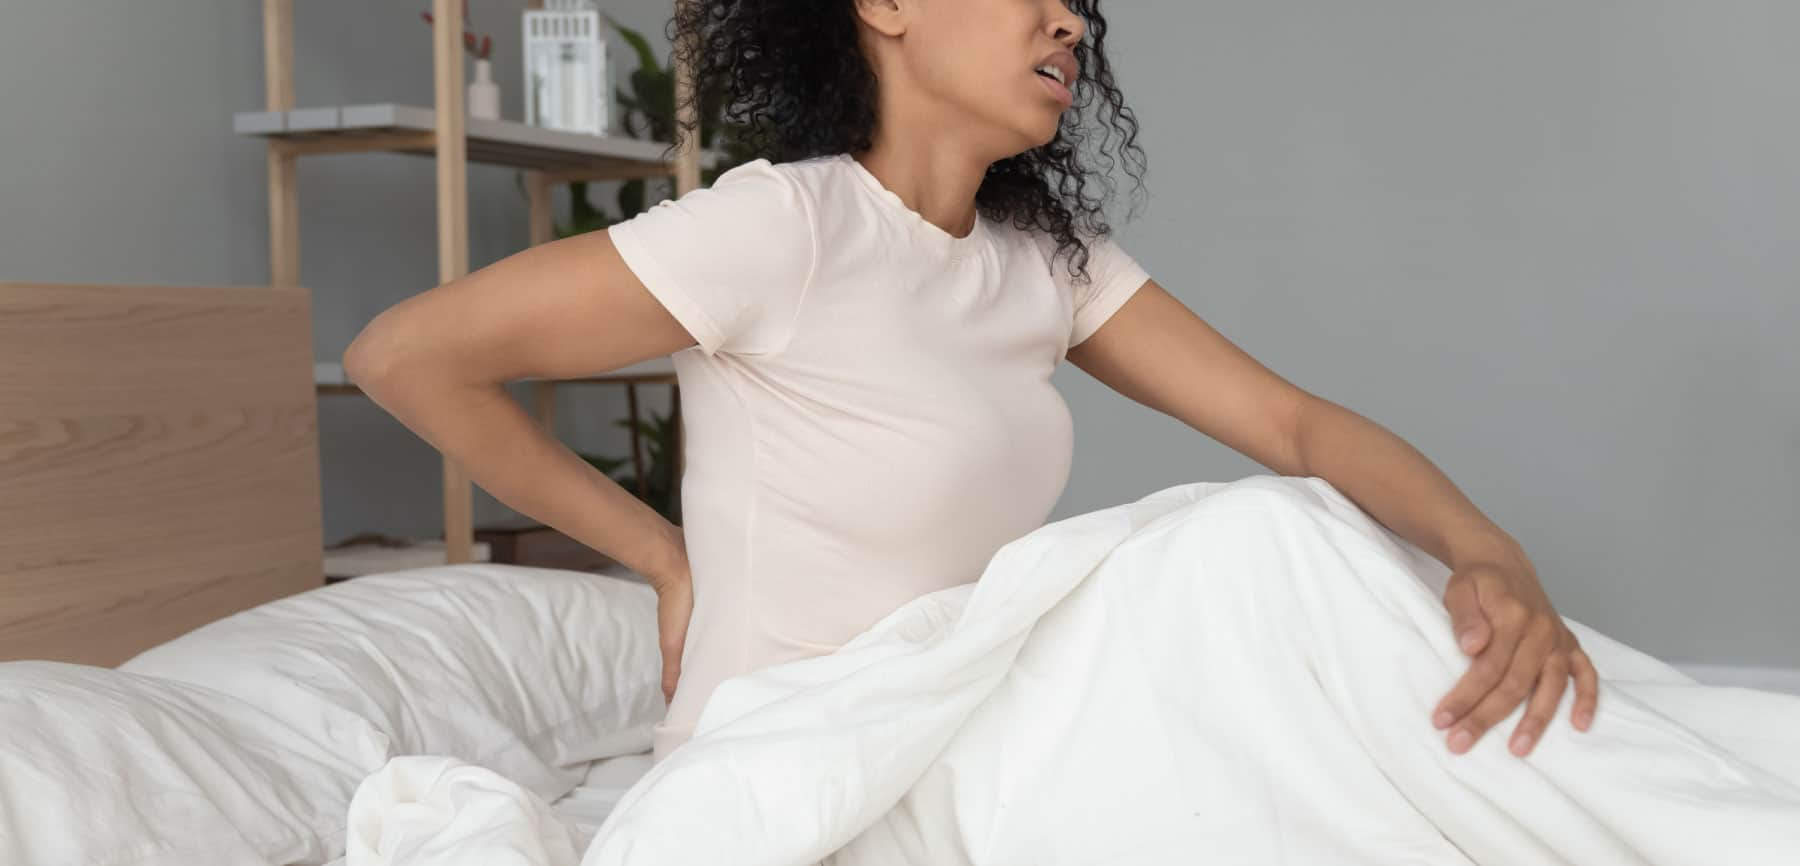 10 Best CBD for Fibromyalgia: Creams and Consumables